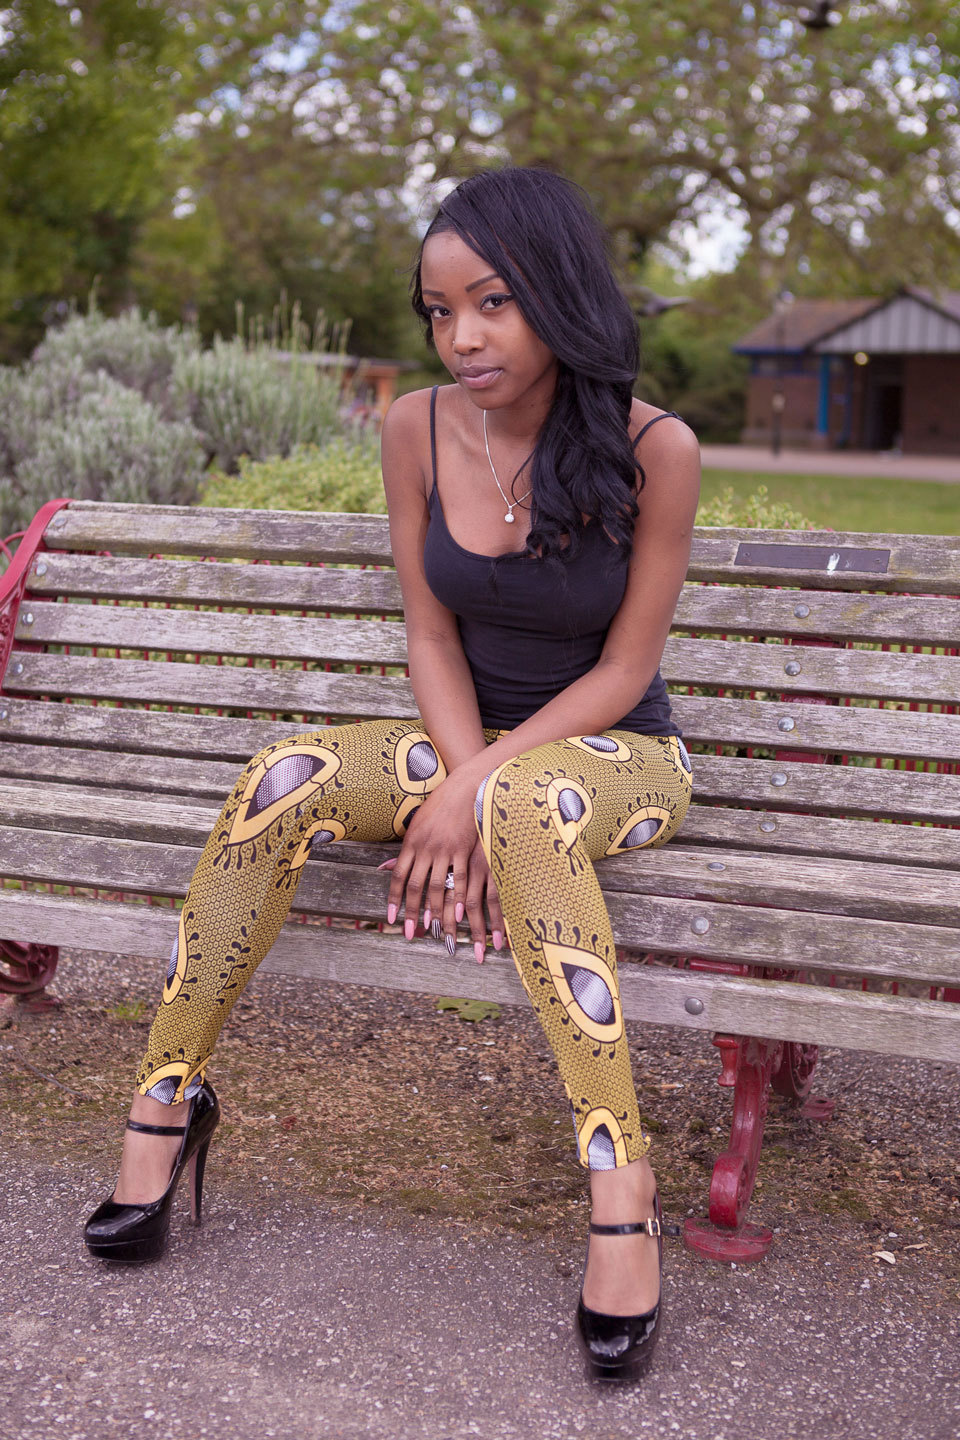 Chika Couture Teardrop Ankara Leggings Available Exclusively at www.chikacouture.com